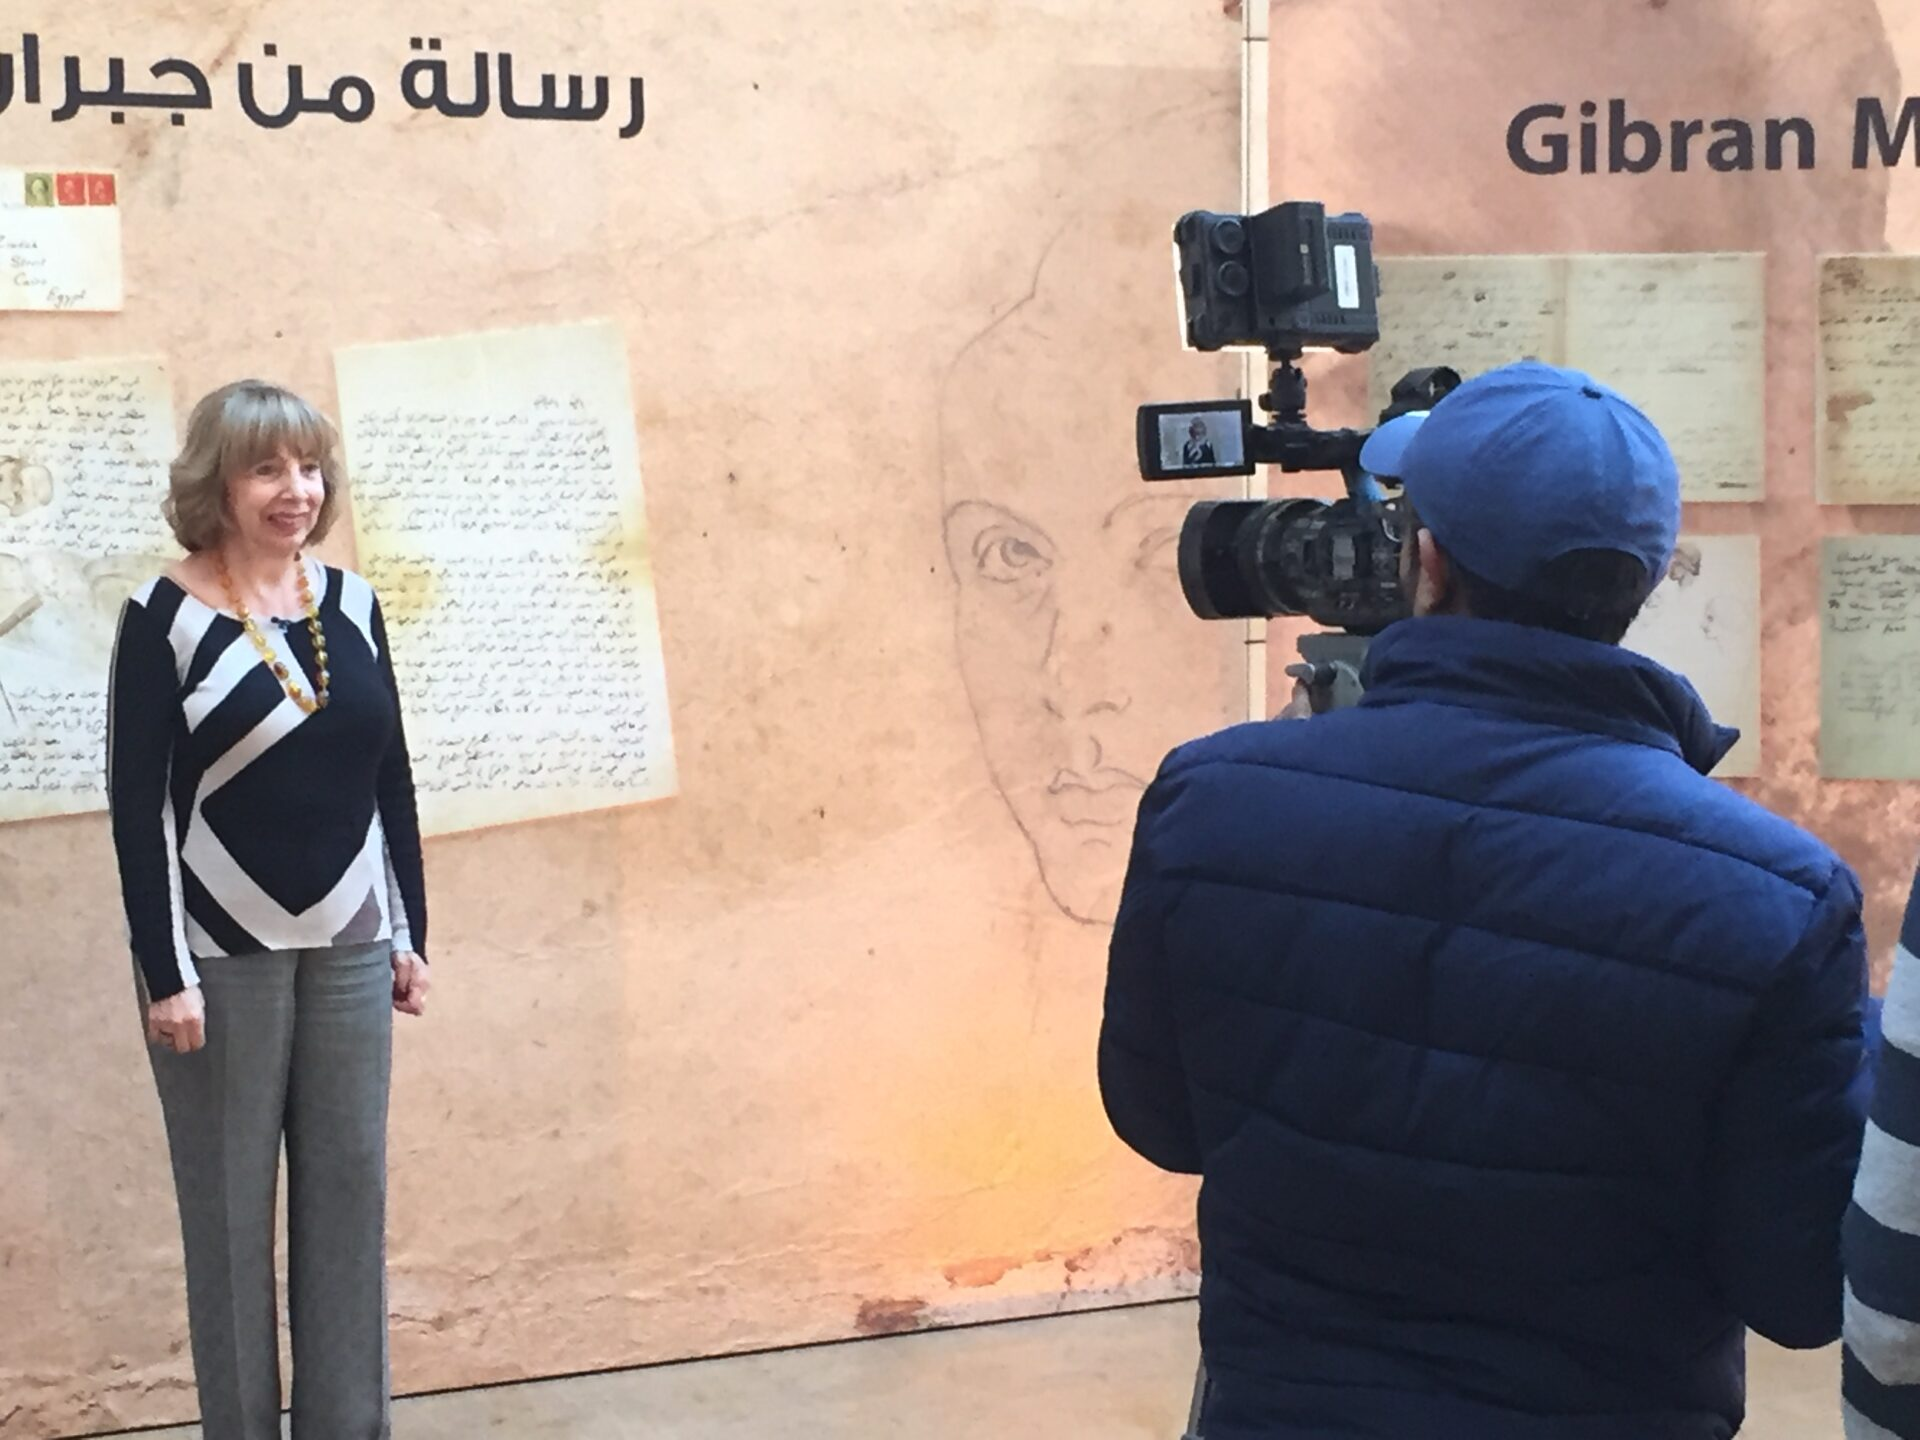 Being interviewed on Lebanese television about the Conference